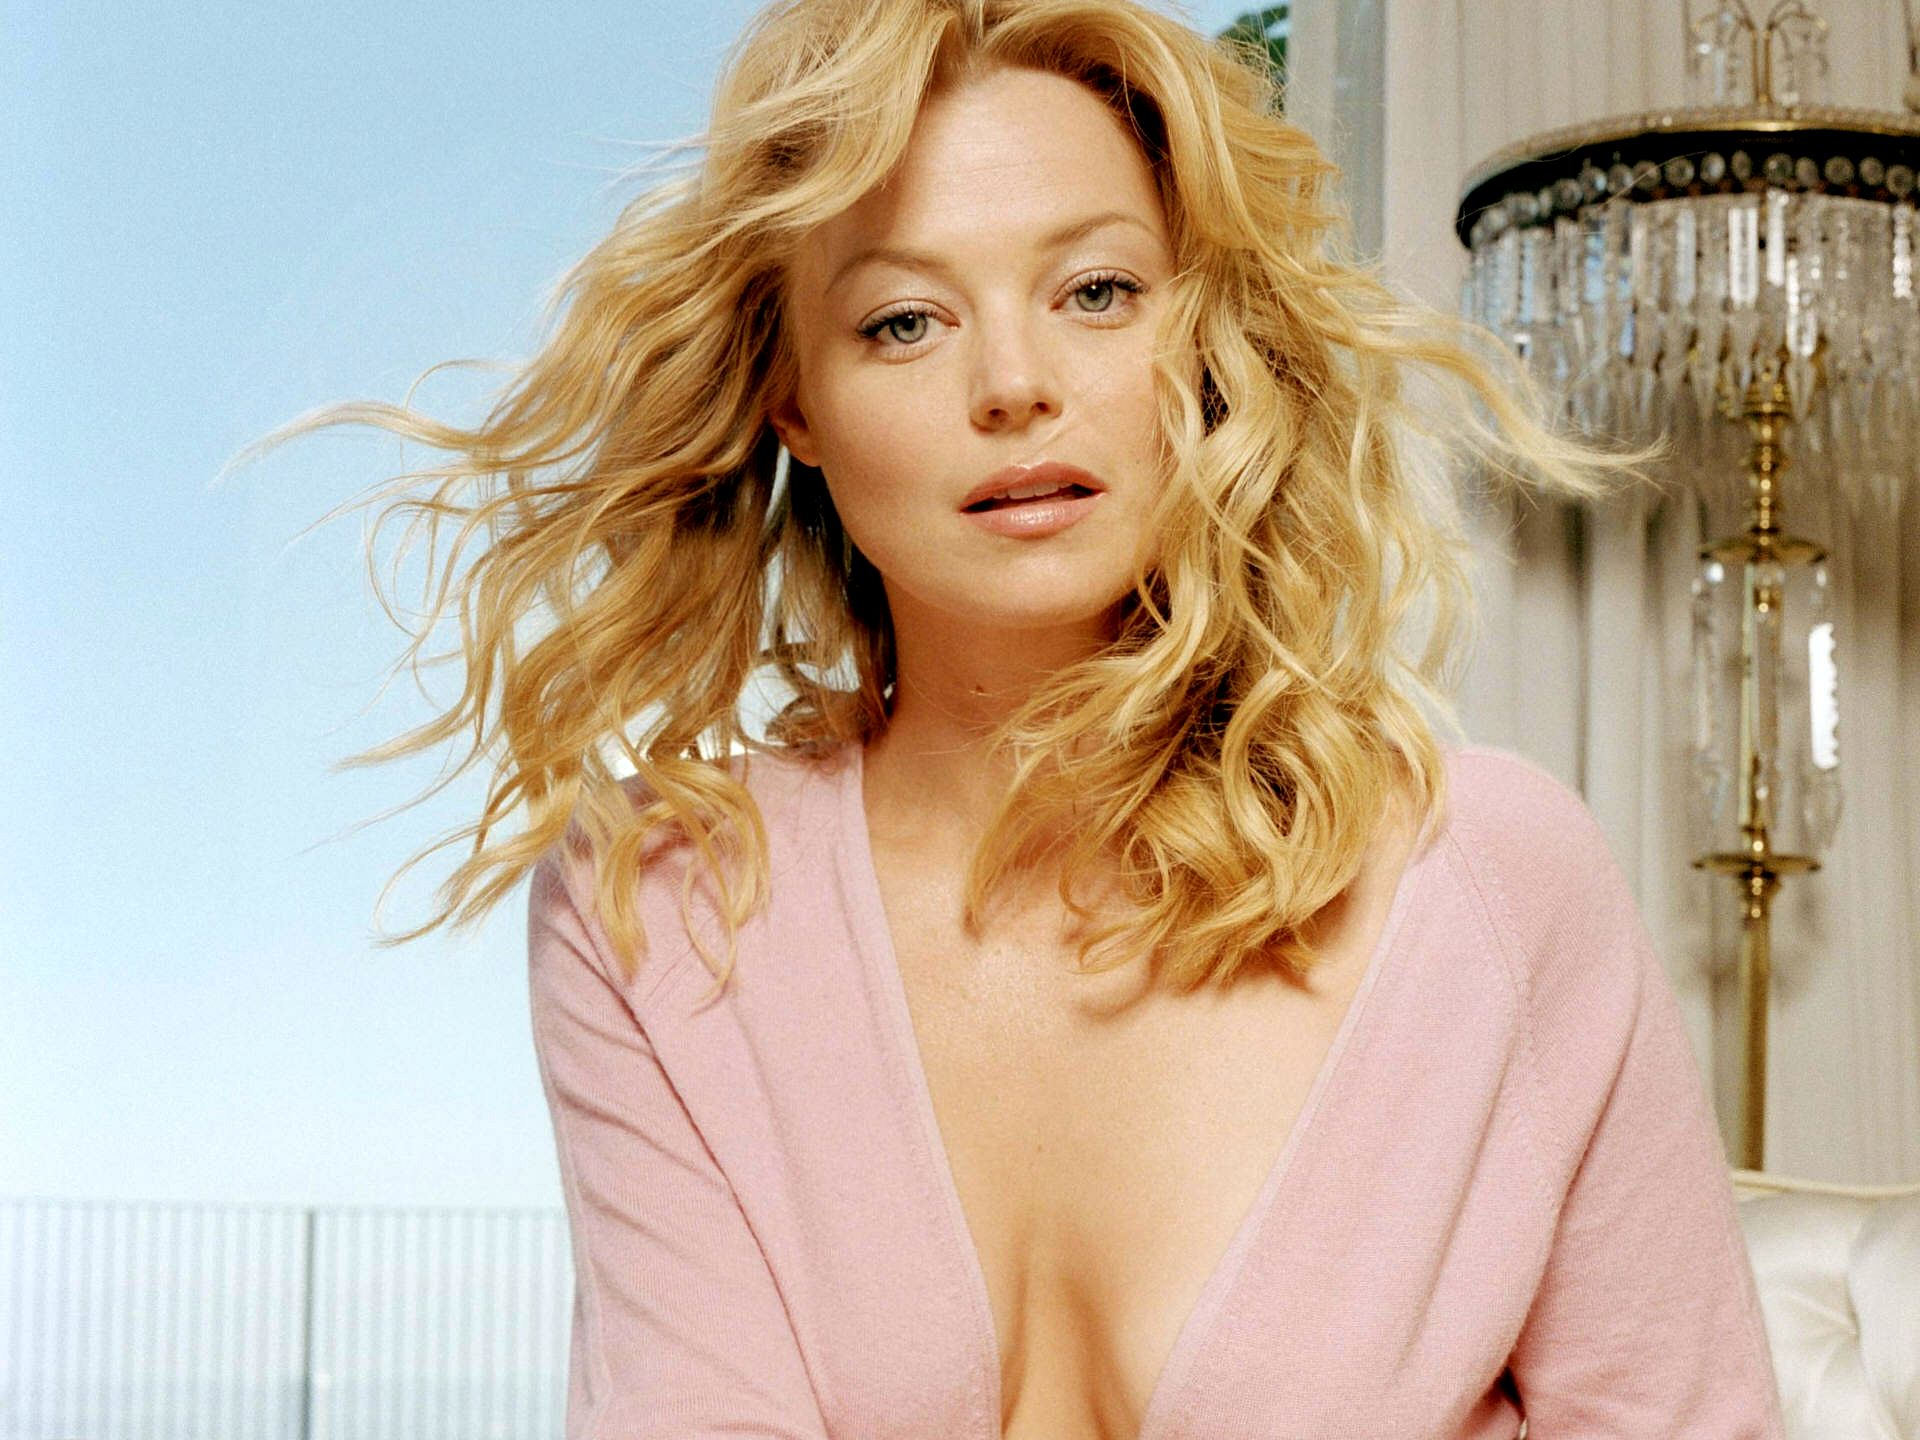 1920x1440 - Charlotte Ross Wallpapers 19